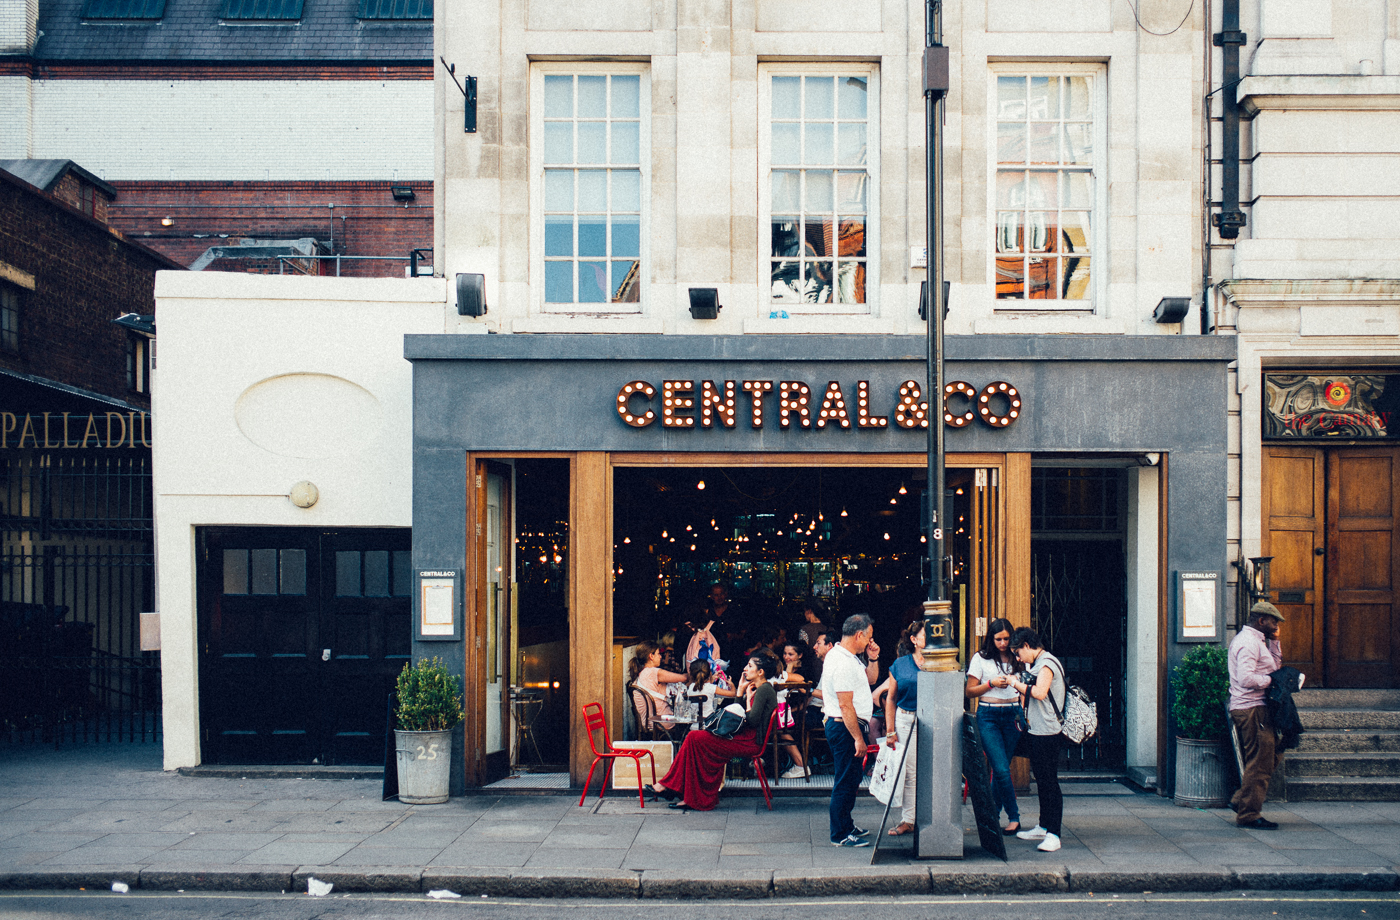 Central & Co